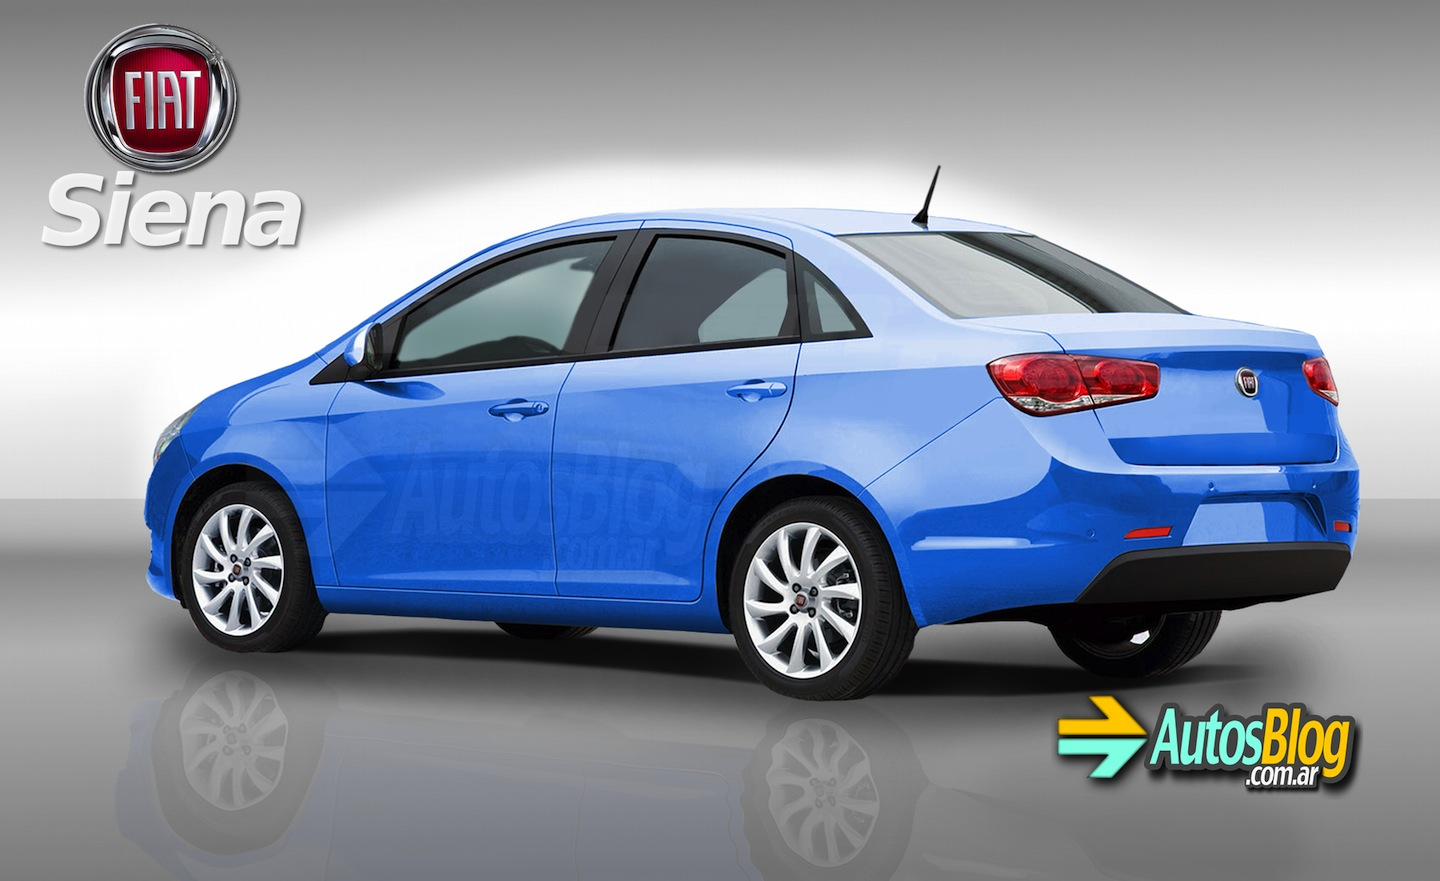 Fiat Siena 2012: Review, Amazing Pictures and Images   Look at the car